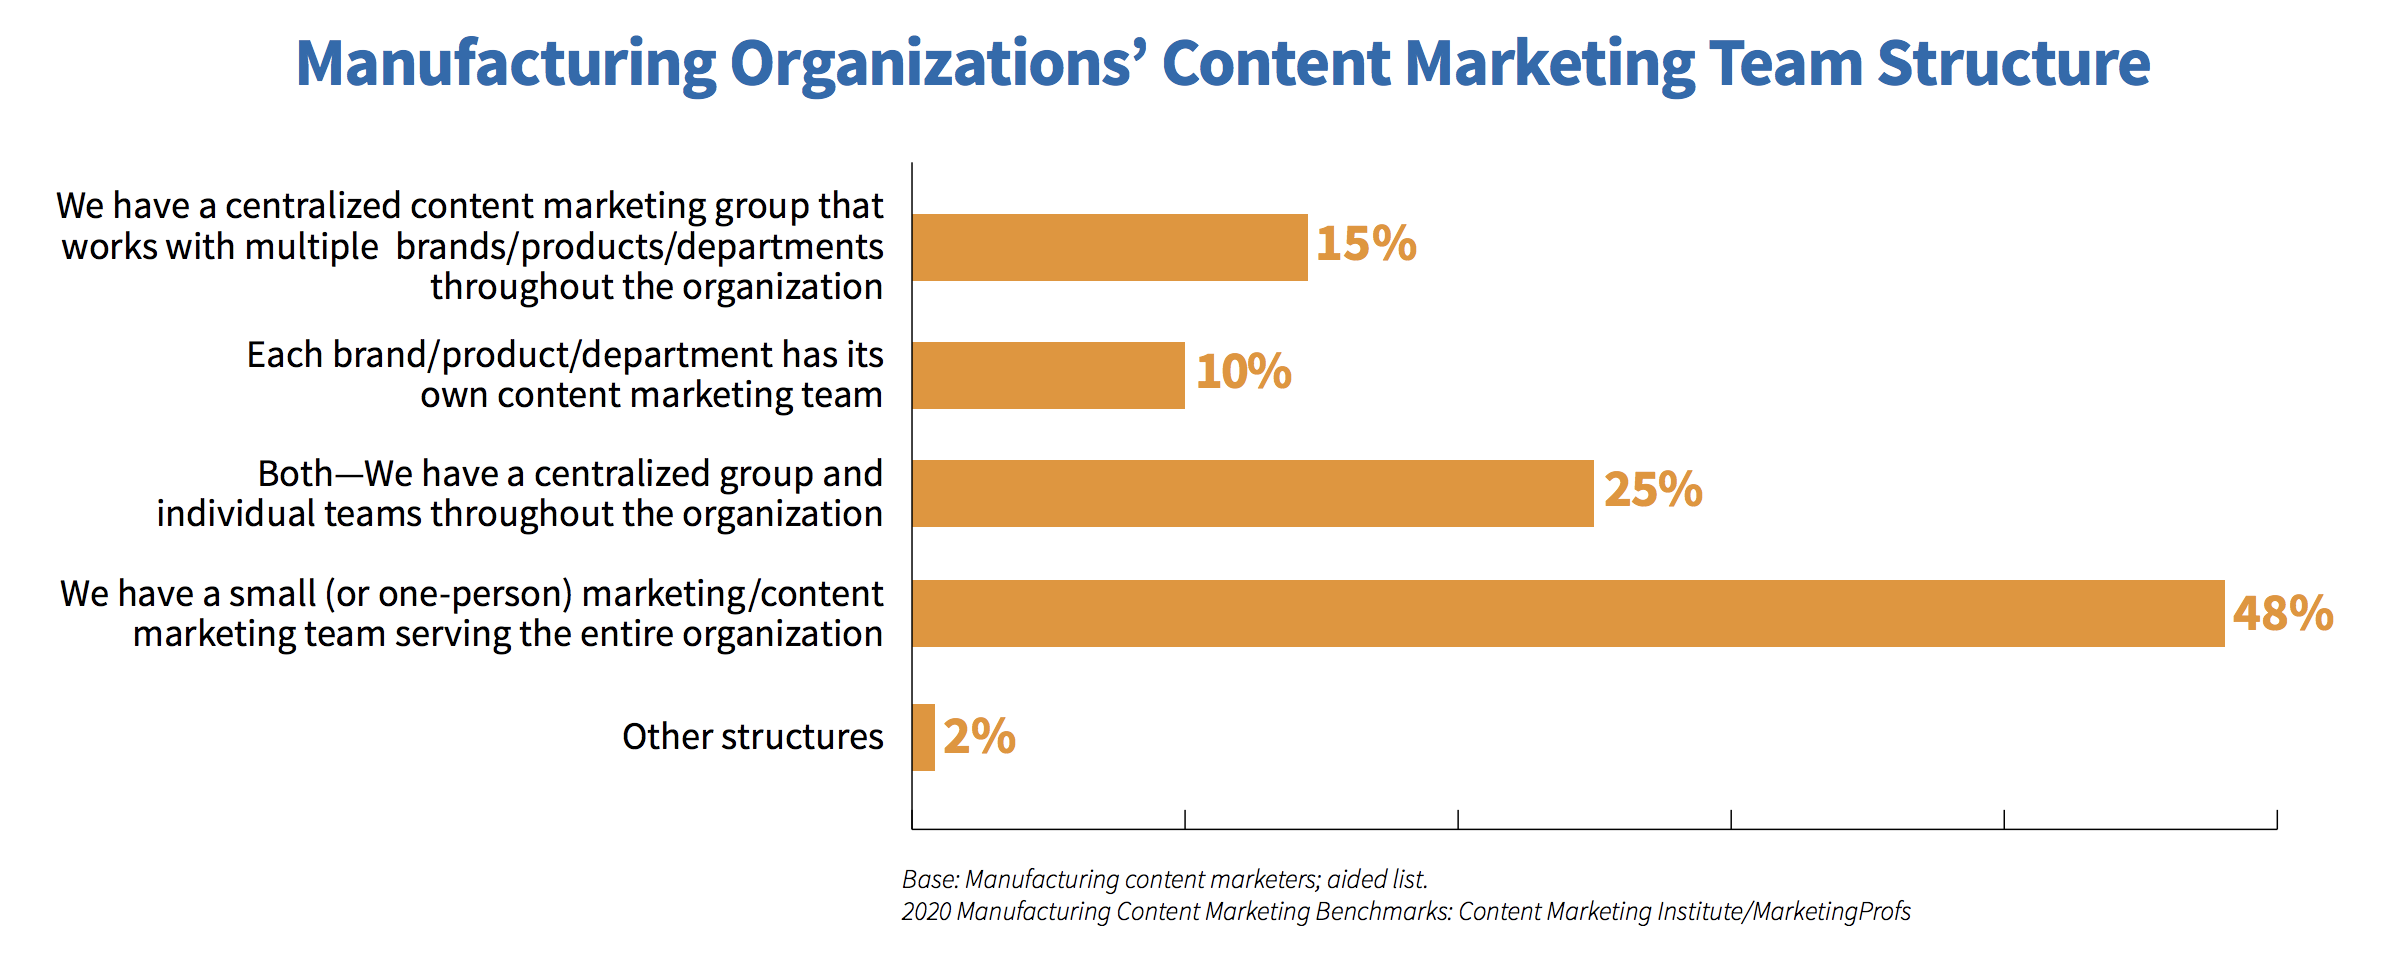 How Manufacturing Content Teams are Structured